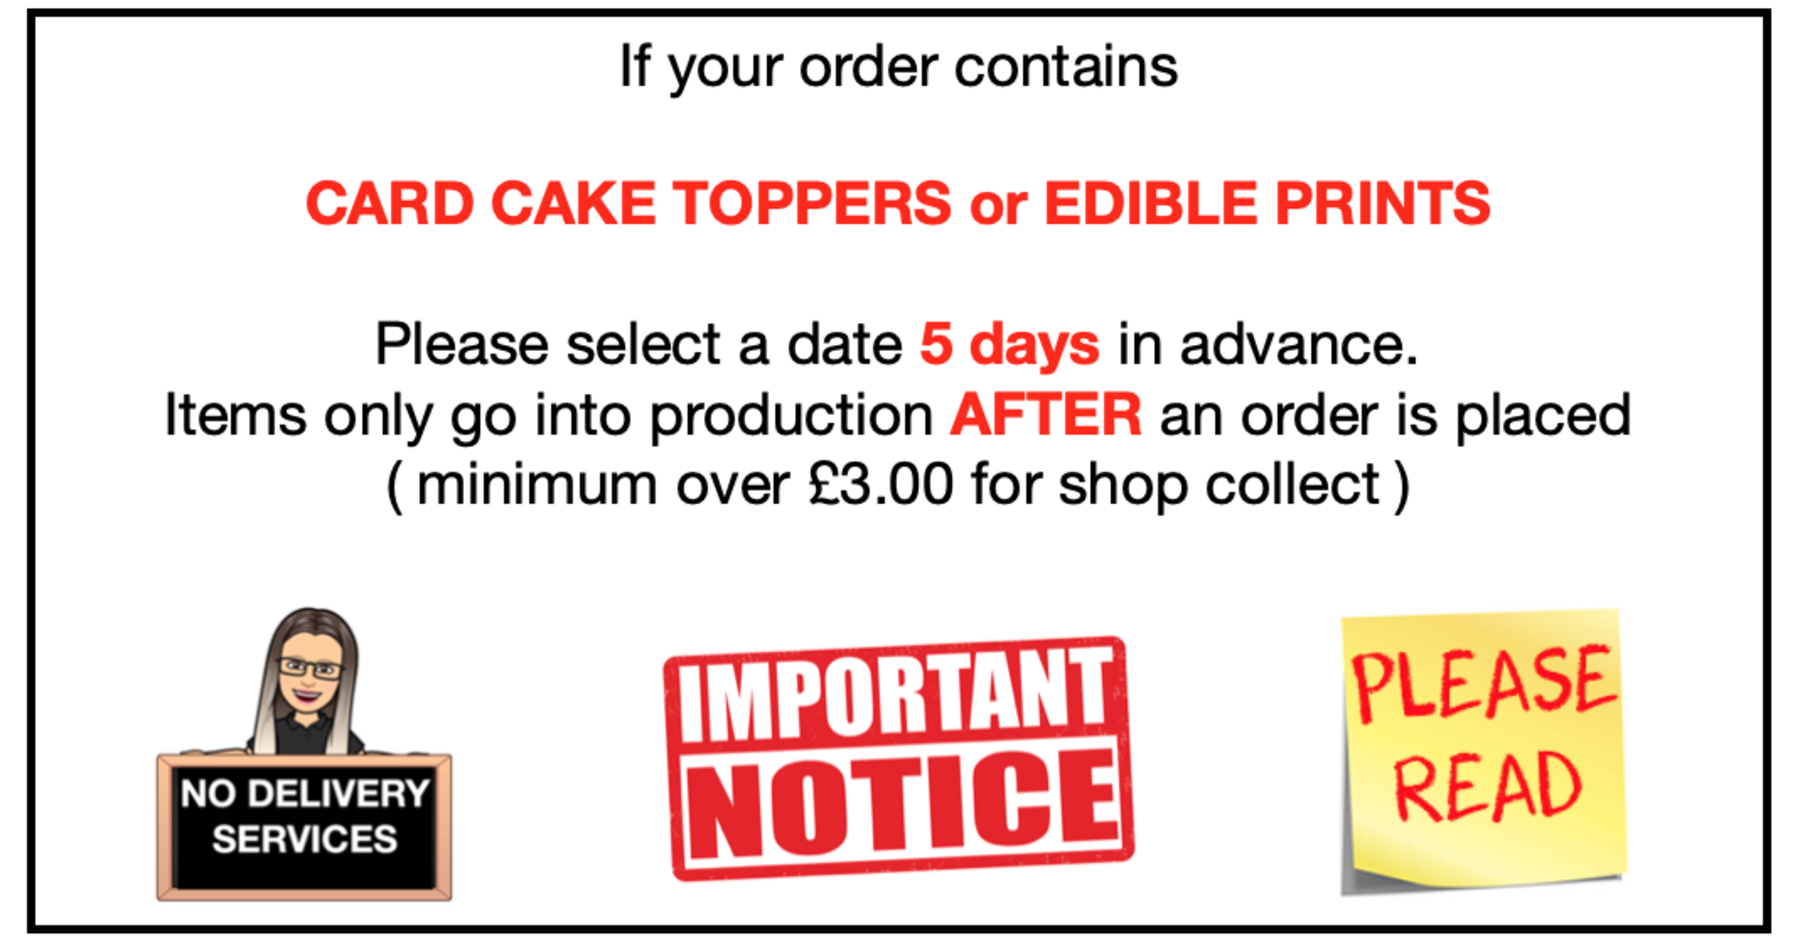 Pre ordering of card toppers or edible prints info